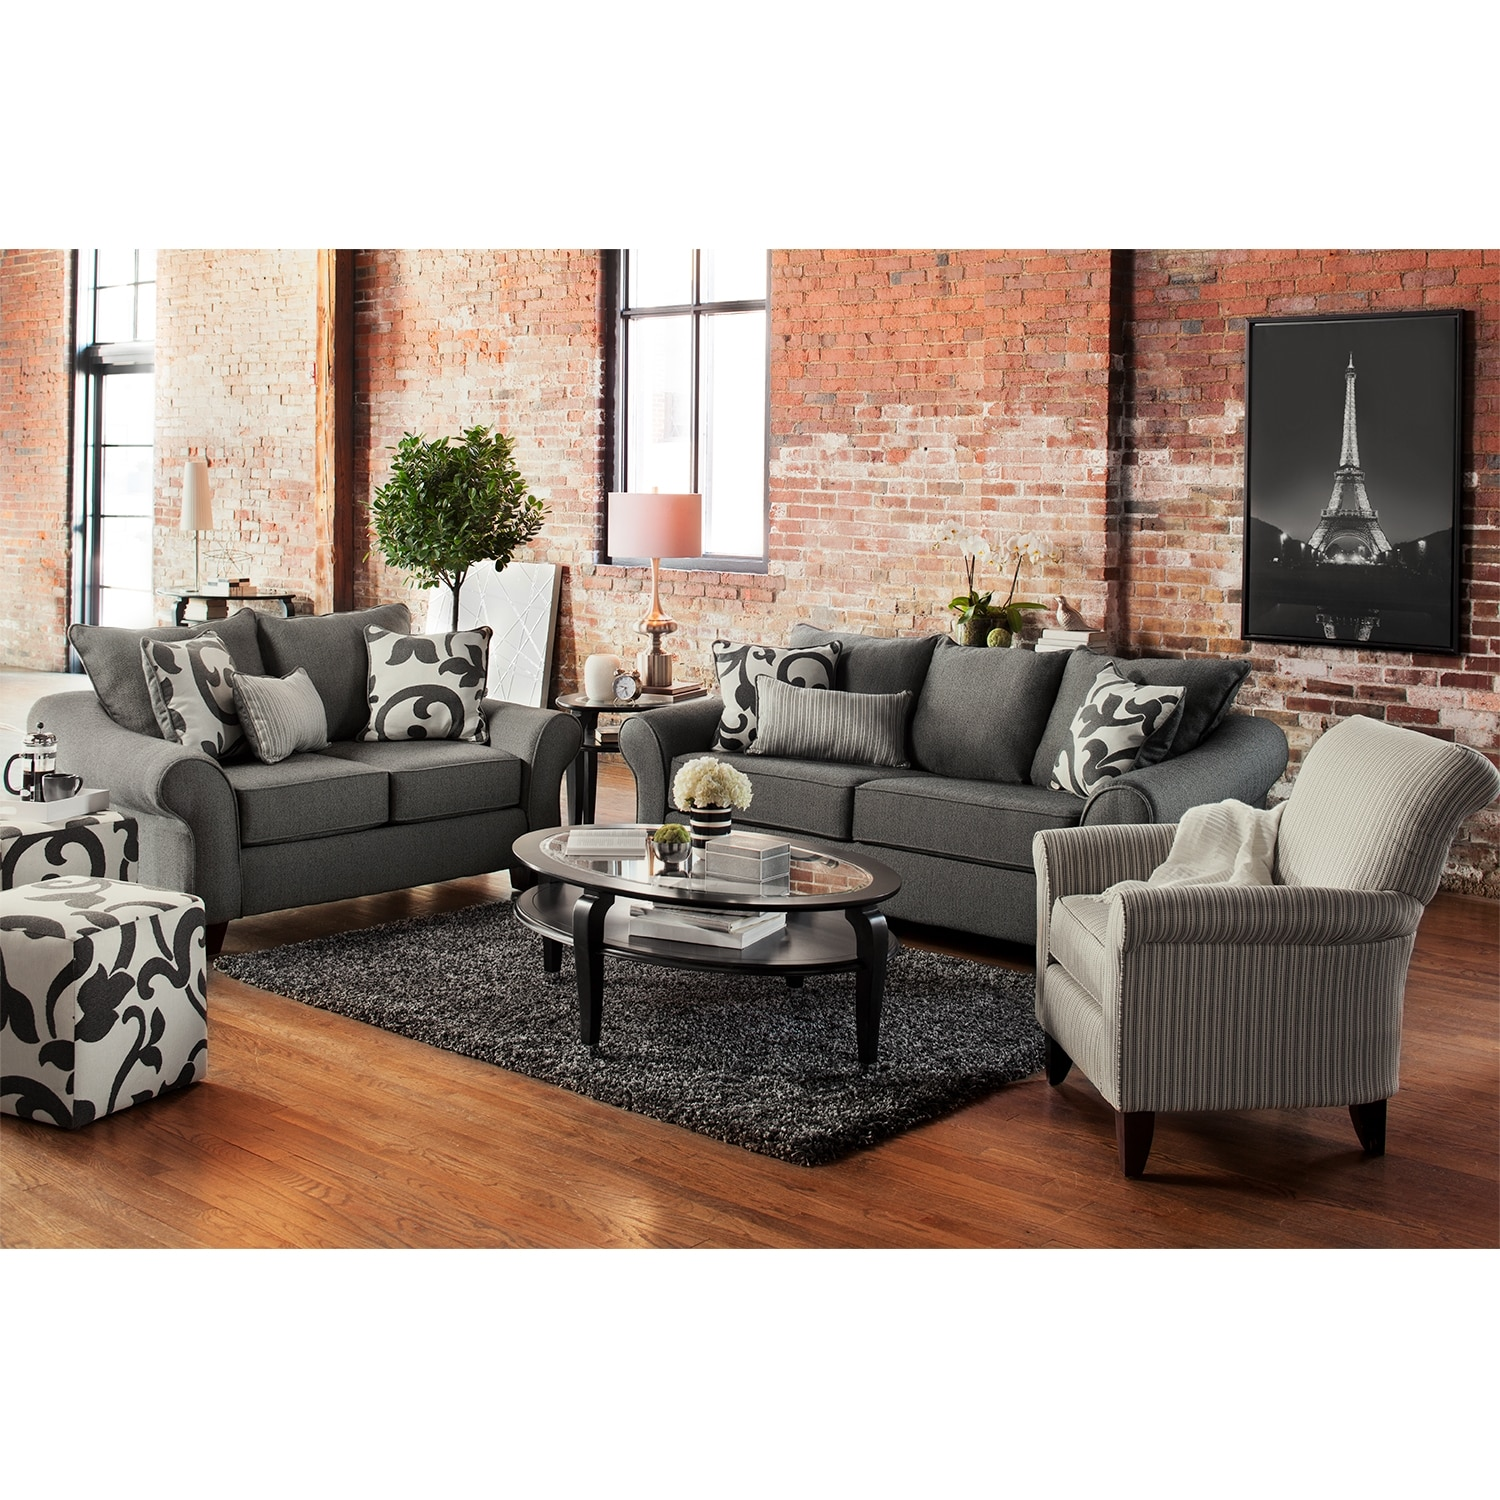 Colette sofa gray value city furniture for Seating furniture living room